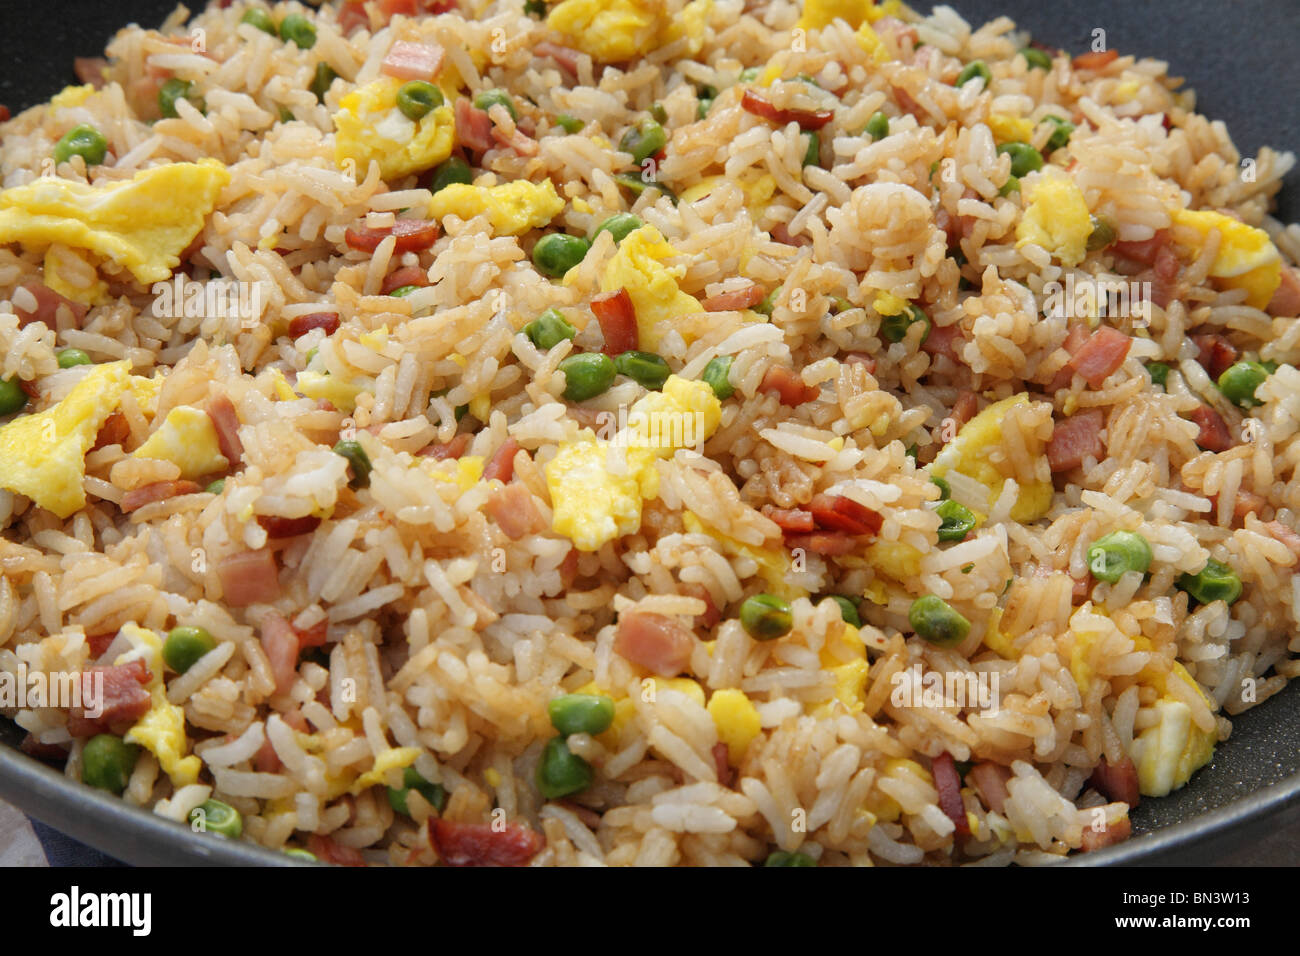 close-up wok full of colorful ham fried rice food - Stock Image